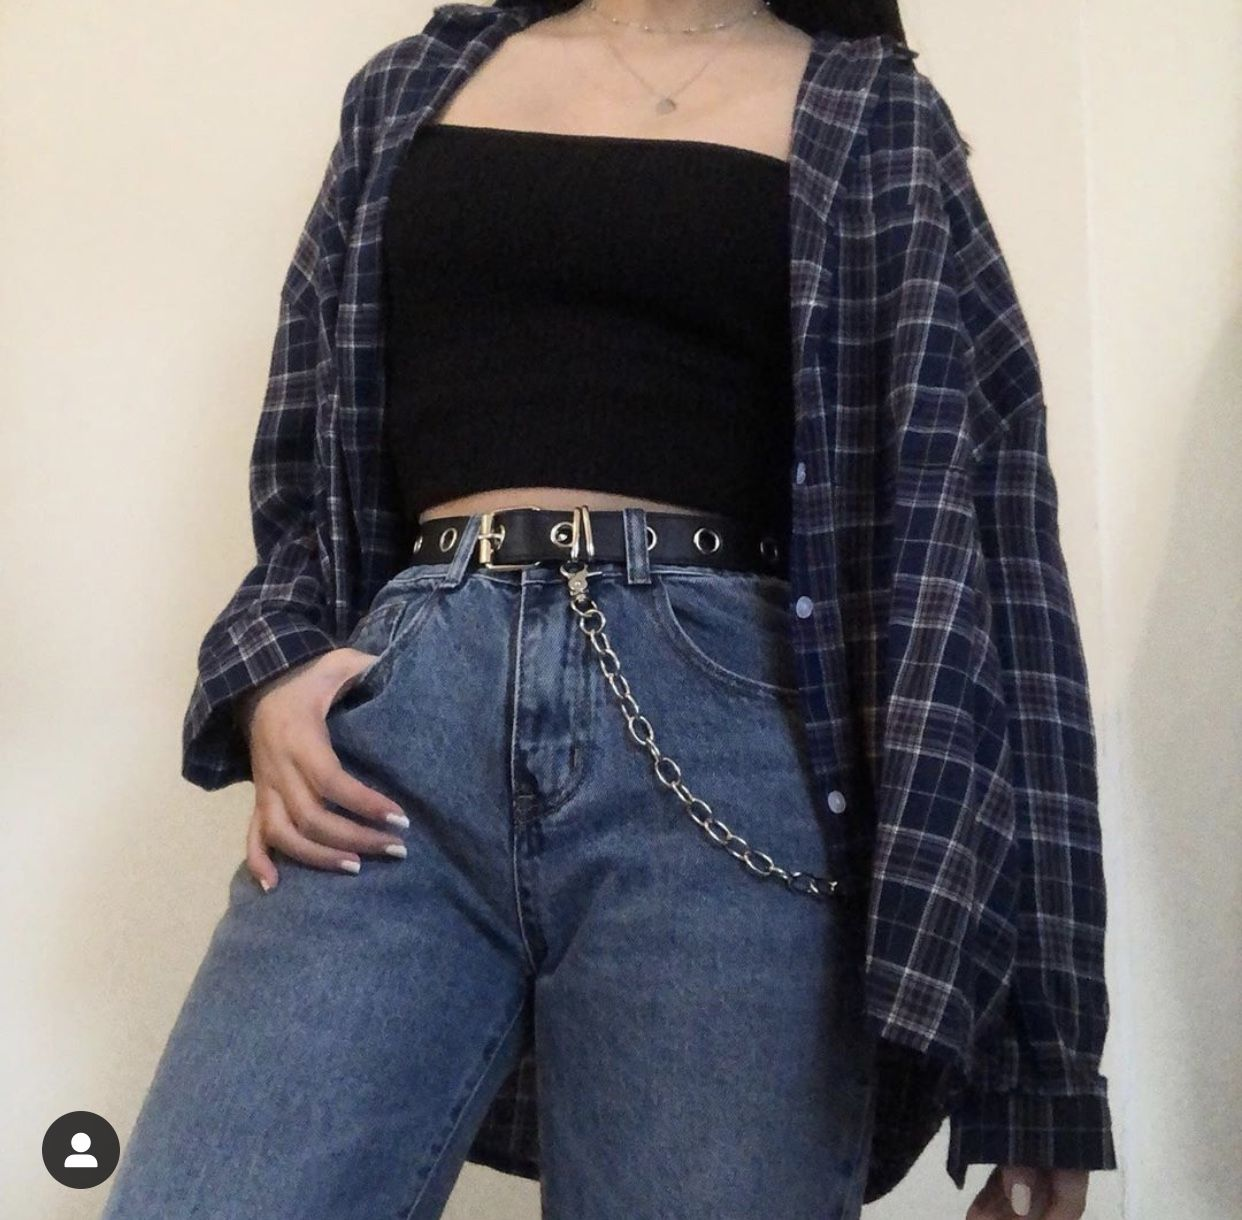 Grunge Fashion Asianfashion Outfits Egirl Aesthetic In 2020 Fashion Inspo Outfits Cute Casual Outfits Spring Fashion Outfits